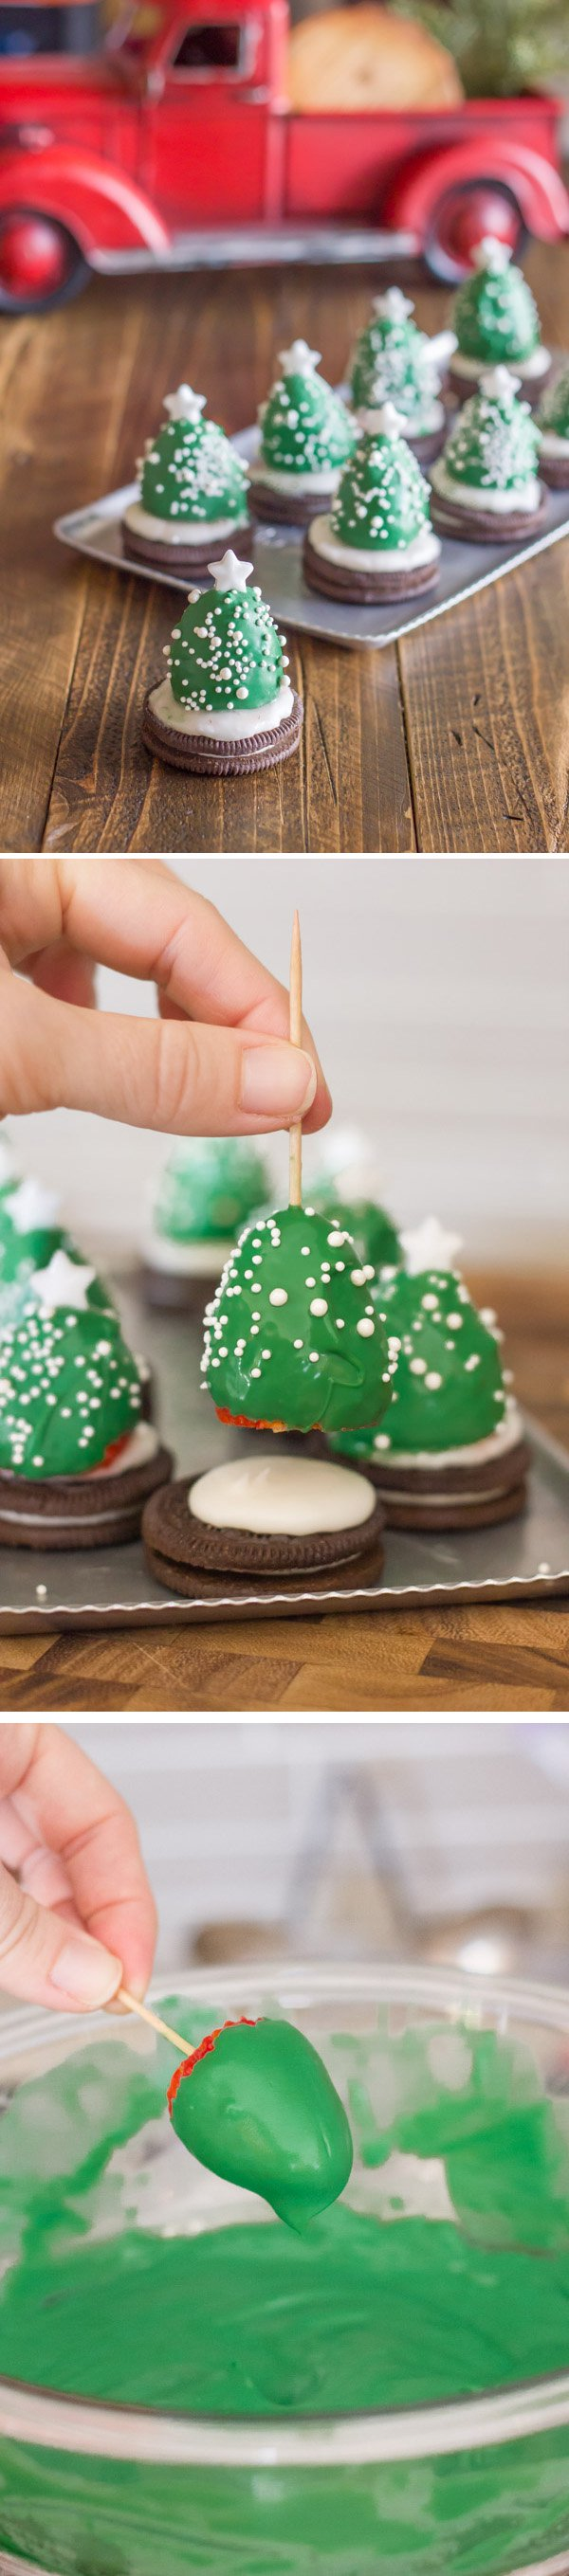 Chocolate-Covered-Strawberry-Christmas-Trees